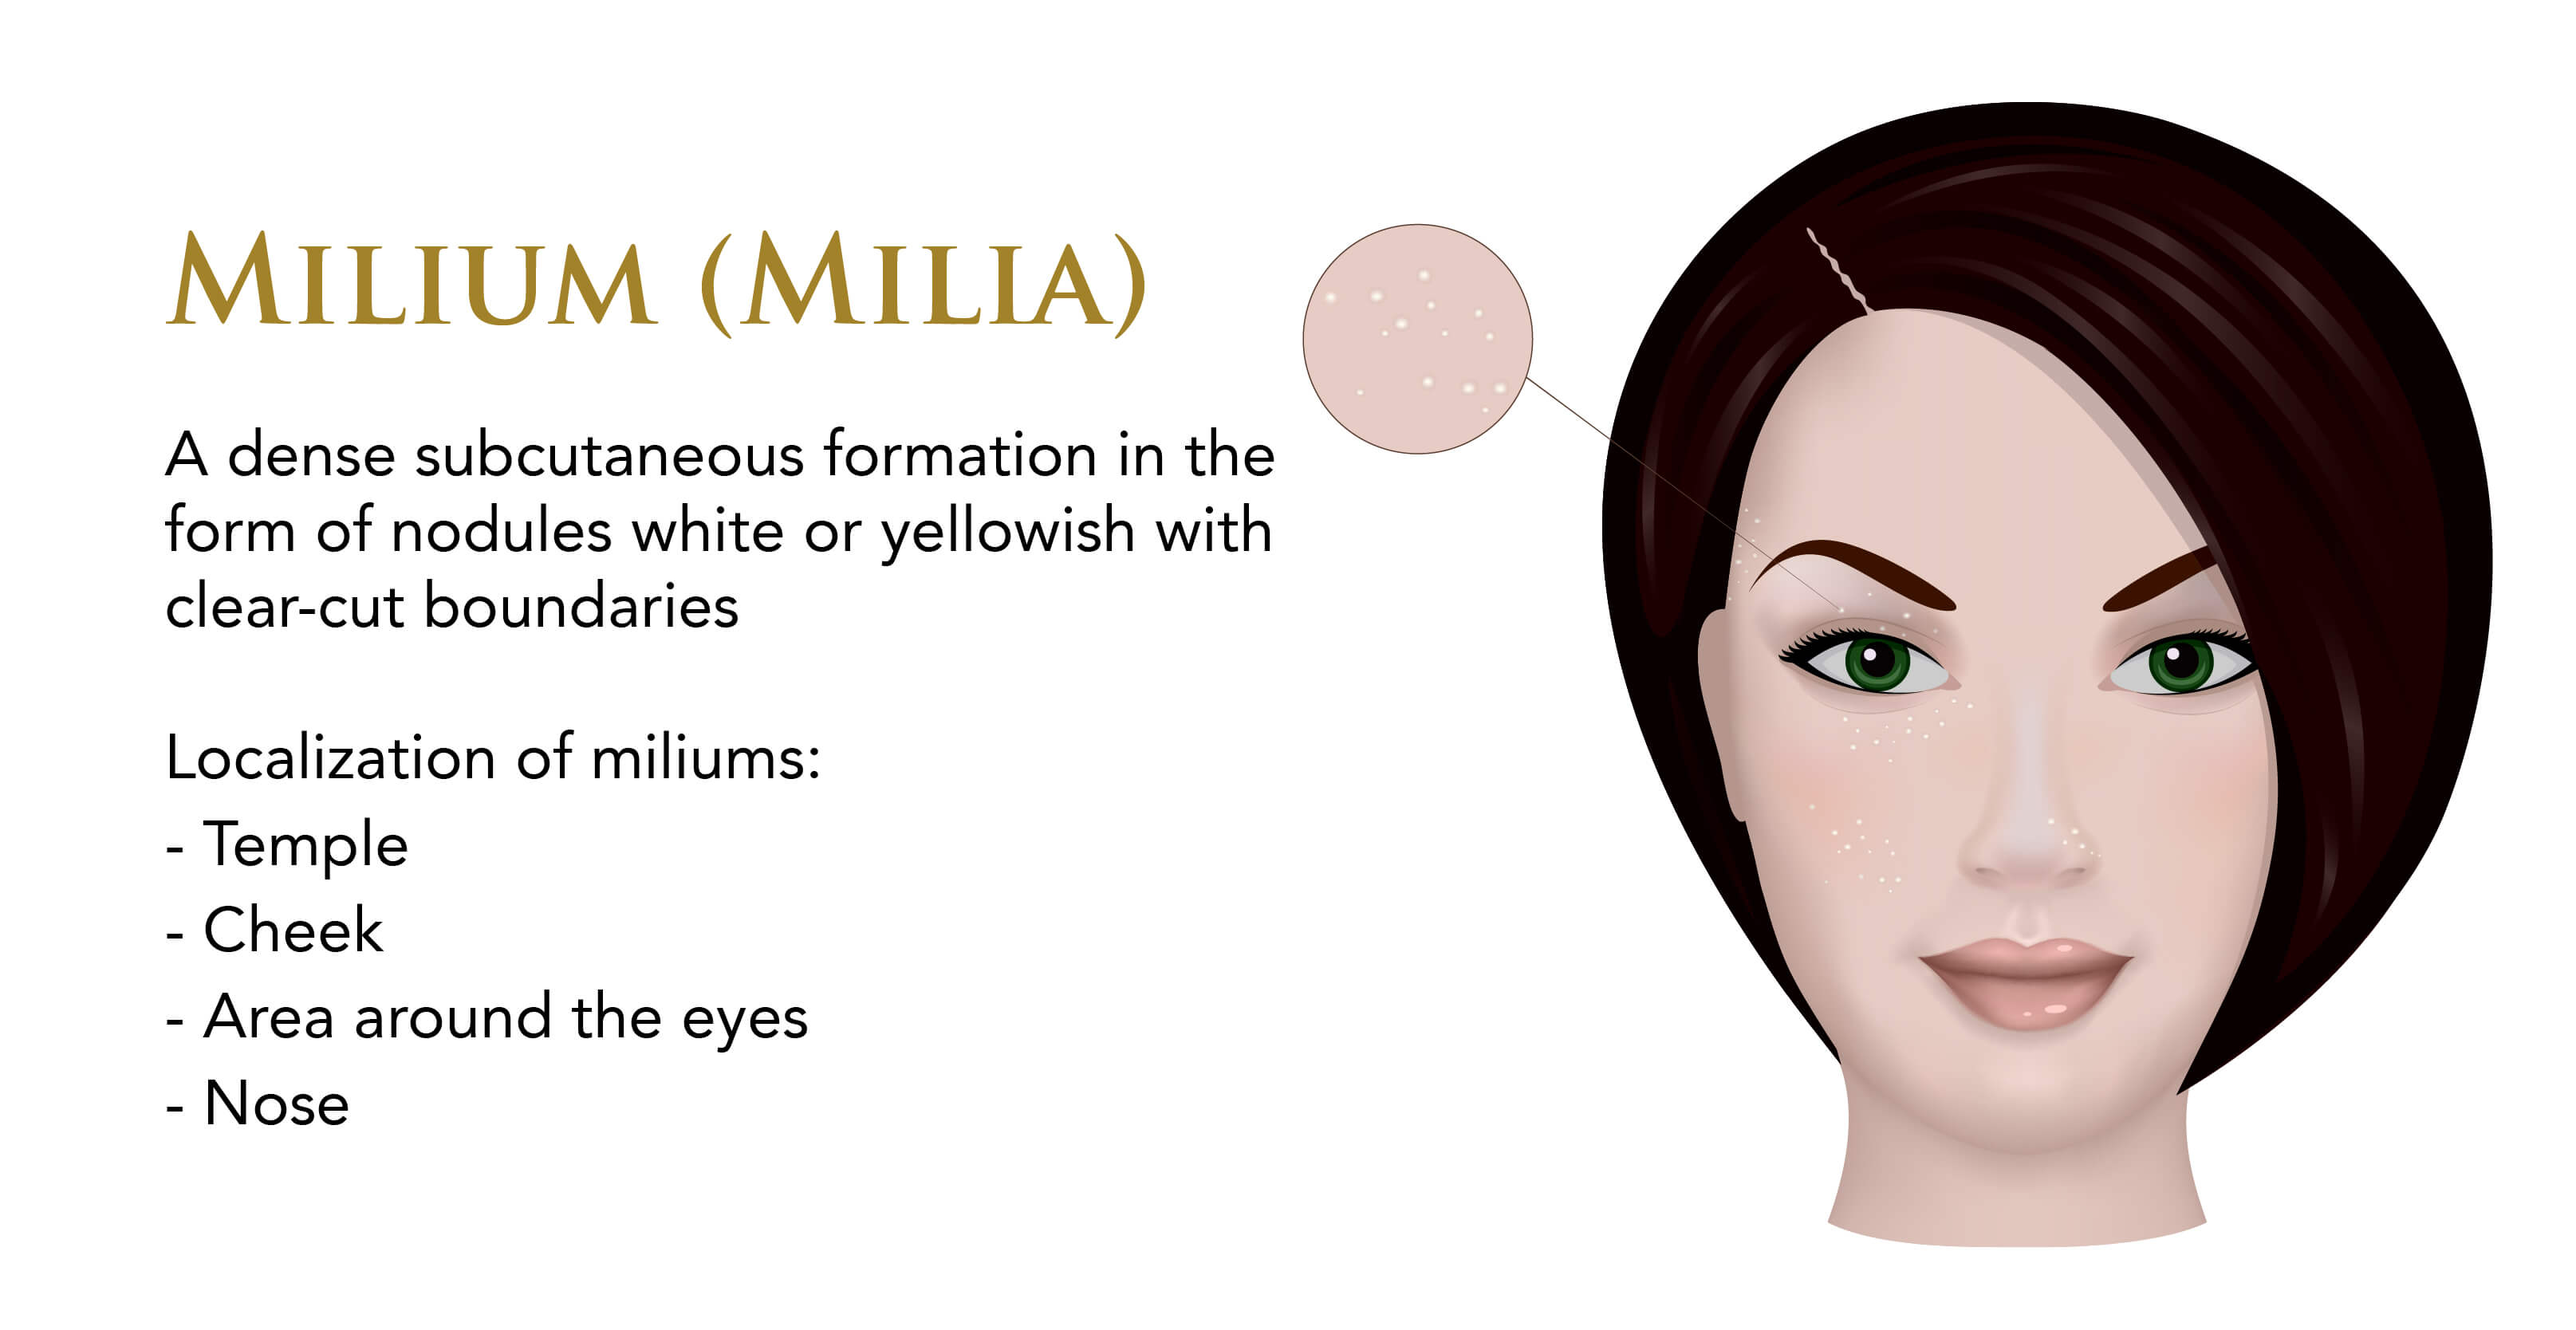 Infographic on milia on the skin